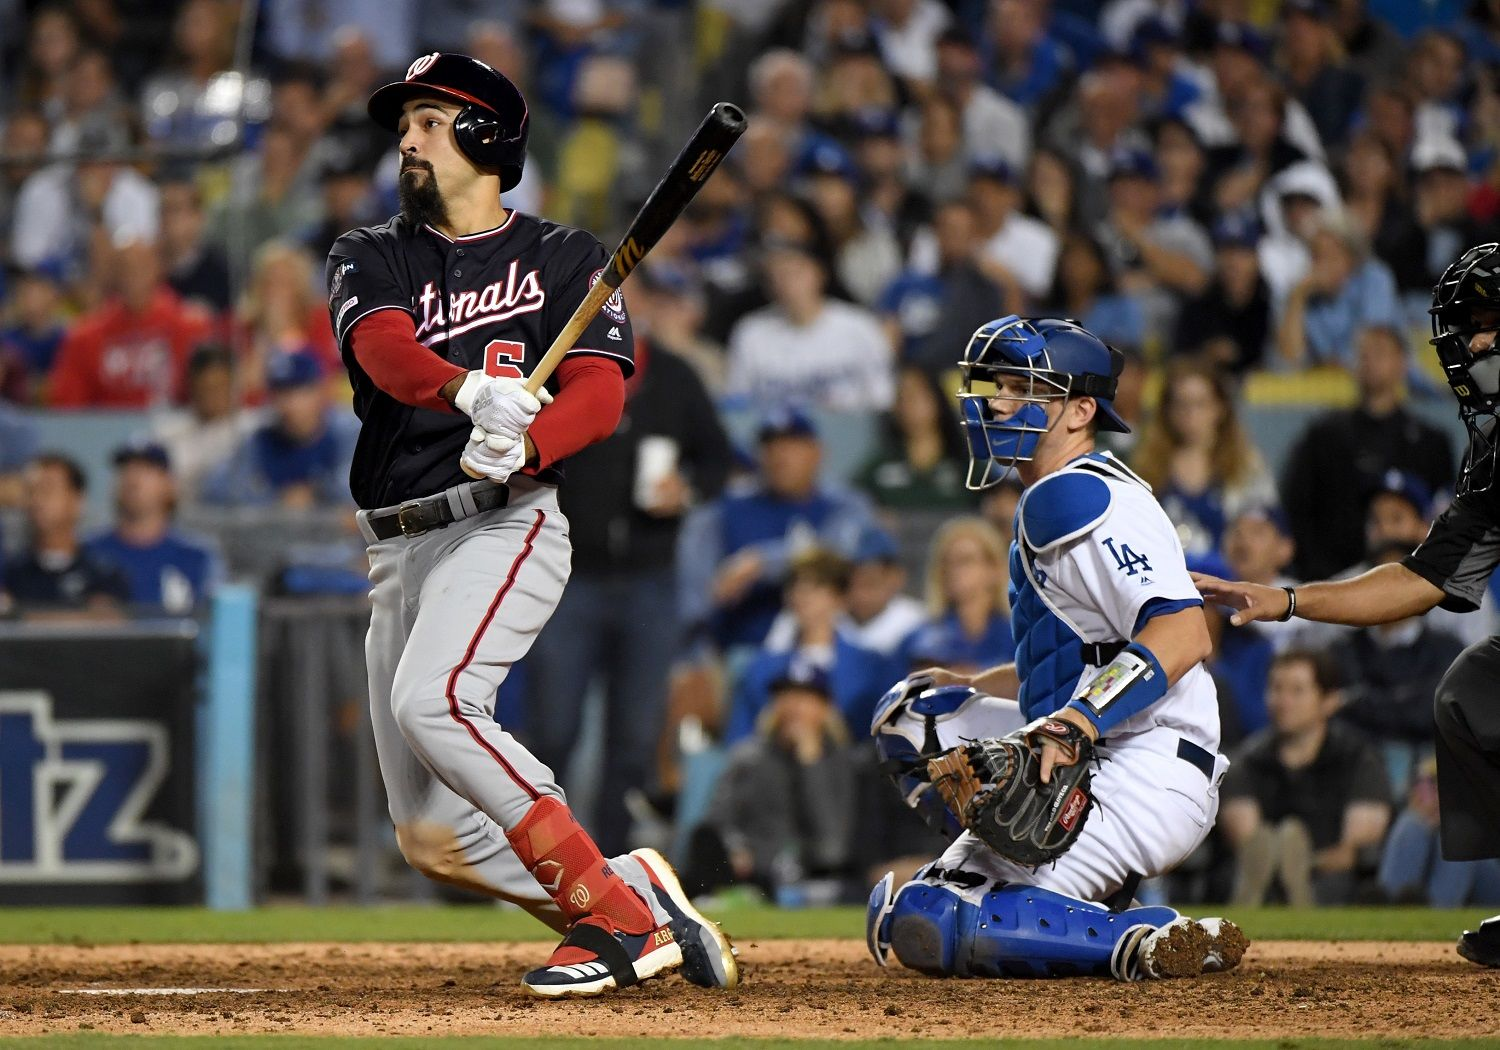 <p><strong>3. NLDS Game 5: Anthony Rendon's 10<sup>th</sup>-inning ground-rule double: 24% | 82%</strong></p> <p>Yes, Rendon's double that put runners at second and third with nobody out actually impacted the Nats' chances more than Kendrick's slam later in the inning, according to the numbers. That got the wheels turning, as Juan Soto was intentionally walked ahead of Kendrick. That may well have happened to most hitters in that spot, but you could be sure the Dodgers would put Soto on, considering his previous at-bat.</p>